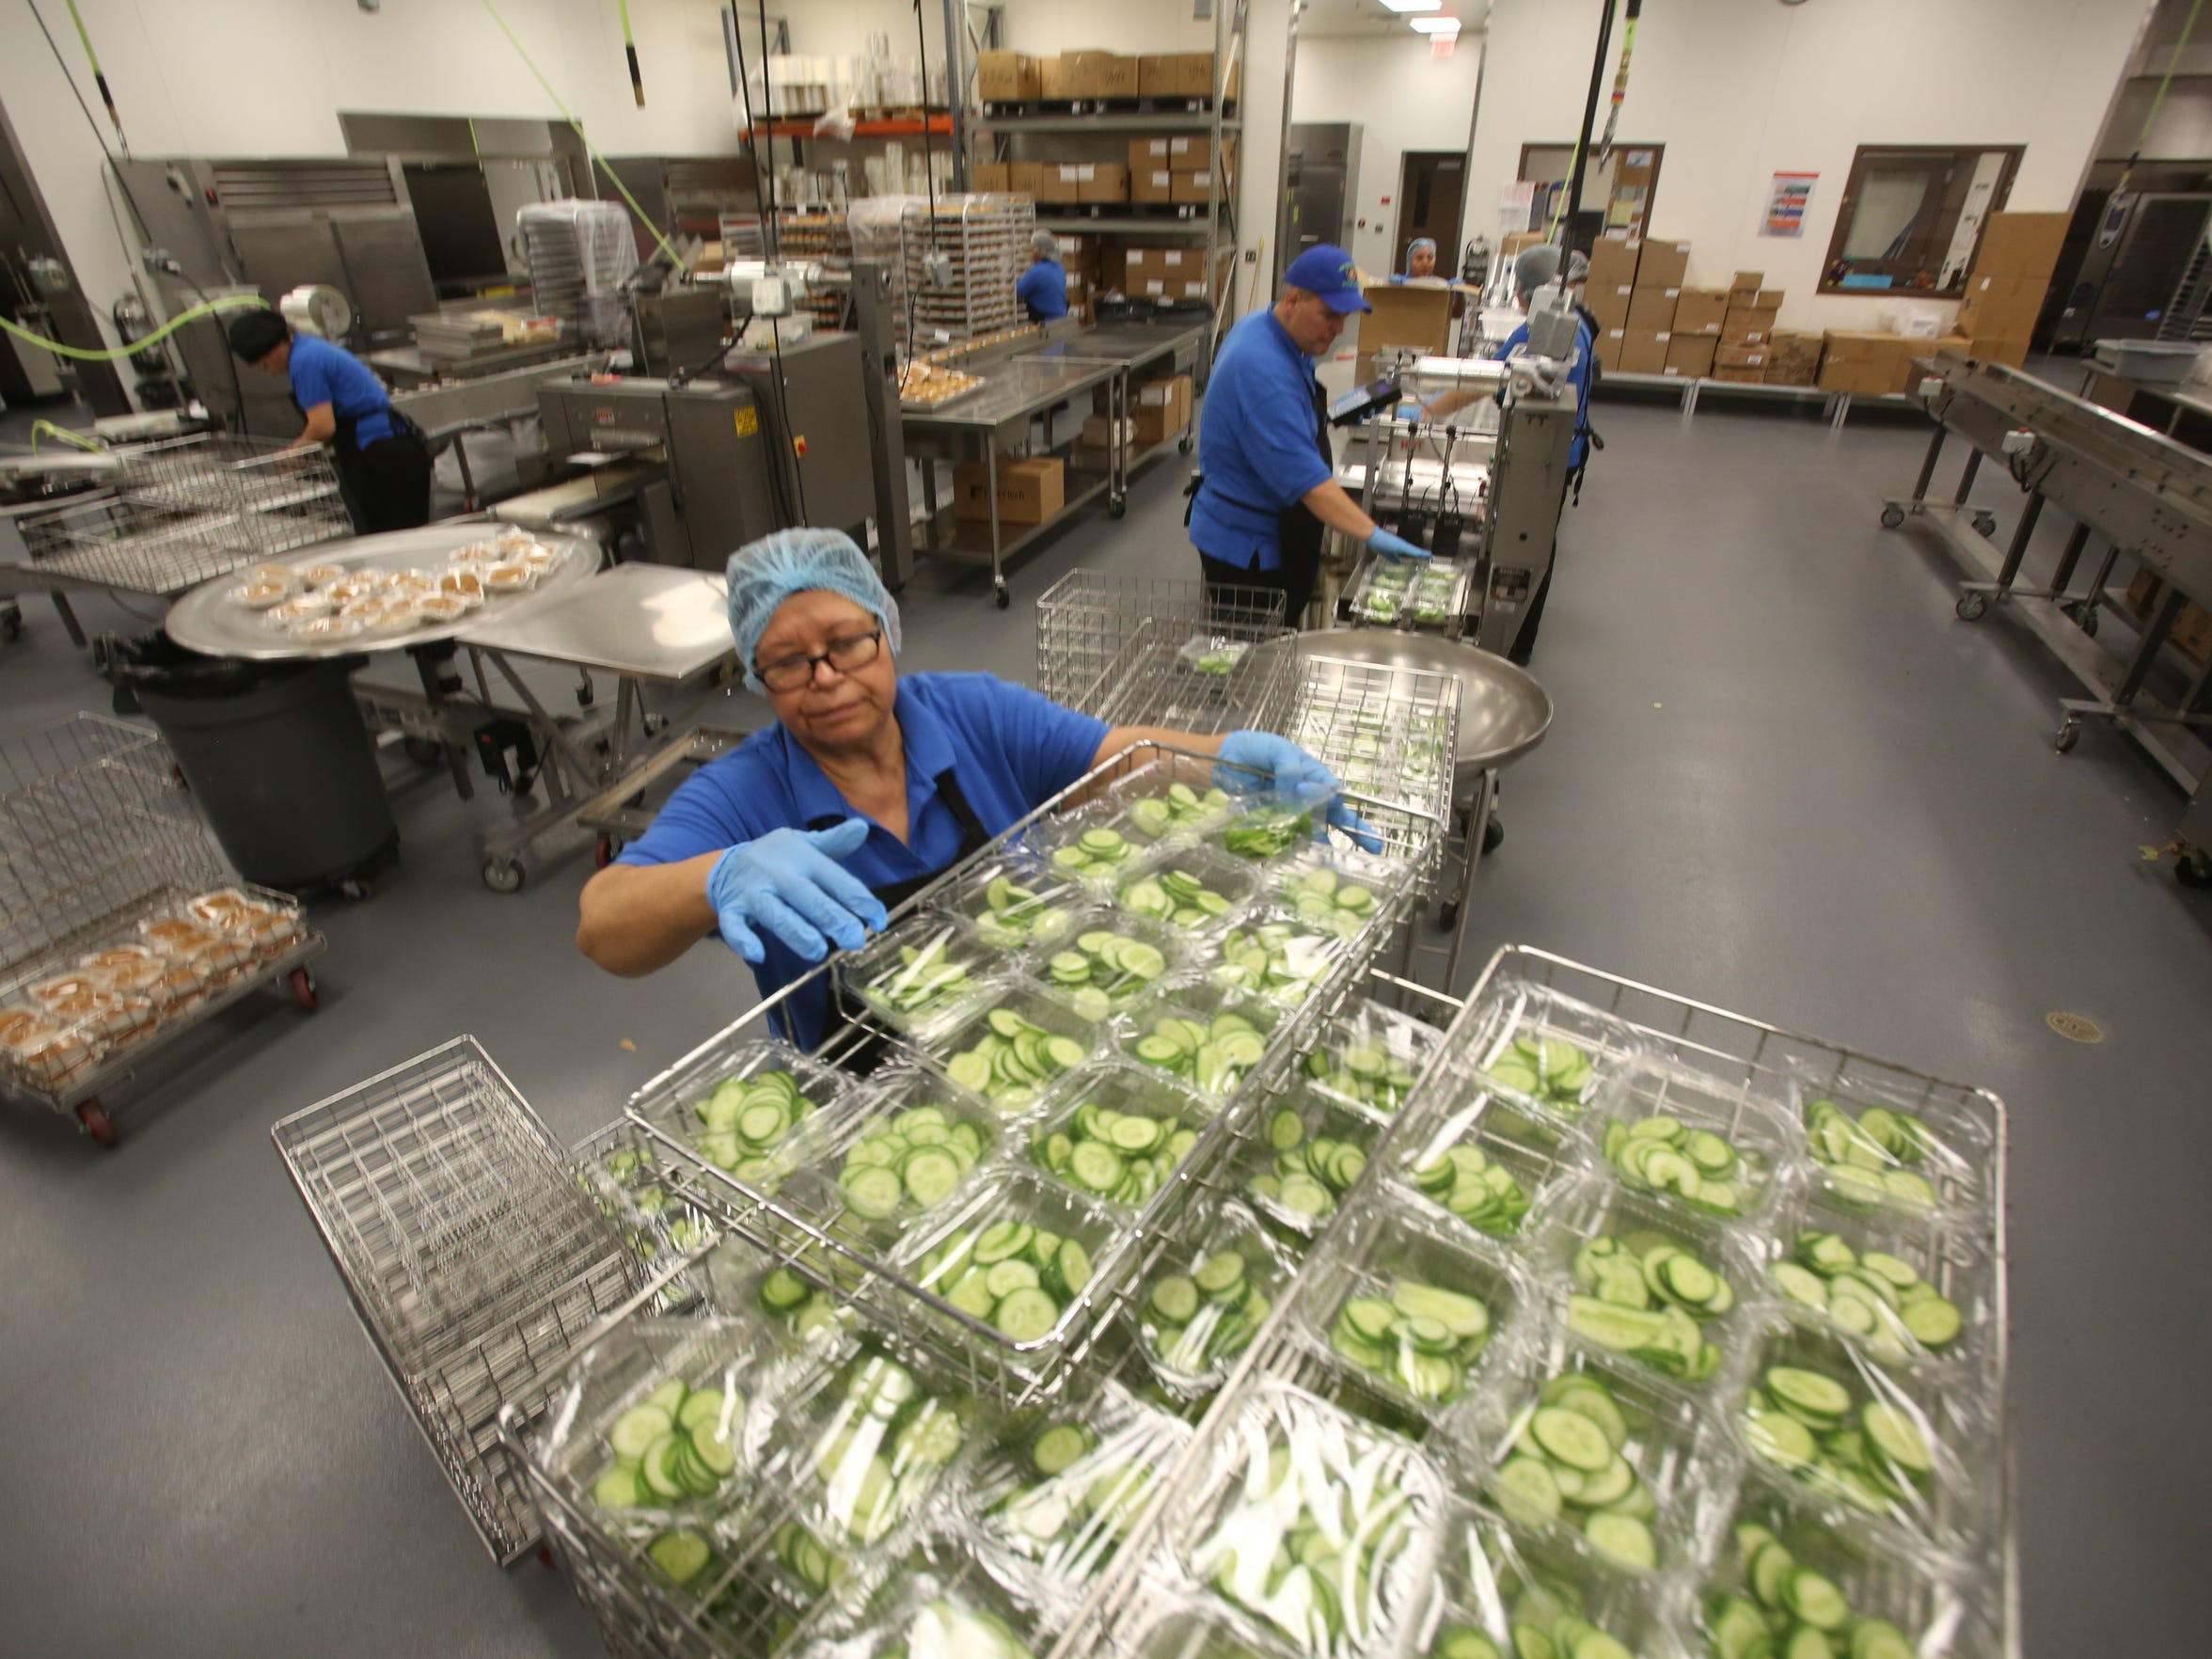 Cucumbers that were harvested in a 14 acre organic farm in Redlands are cut and prepared at the central kitchen for Palm Springs Unified School District.